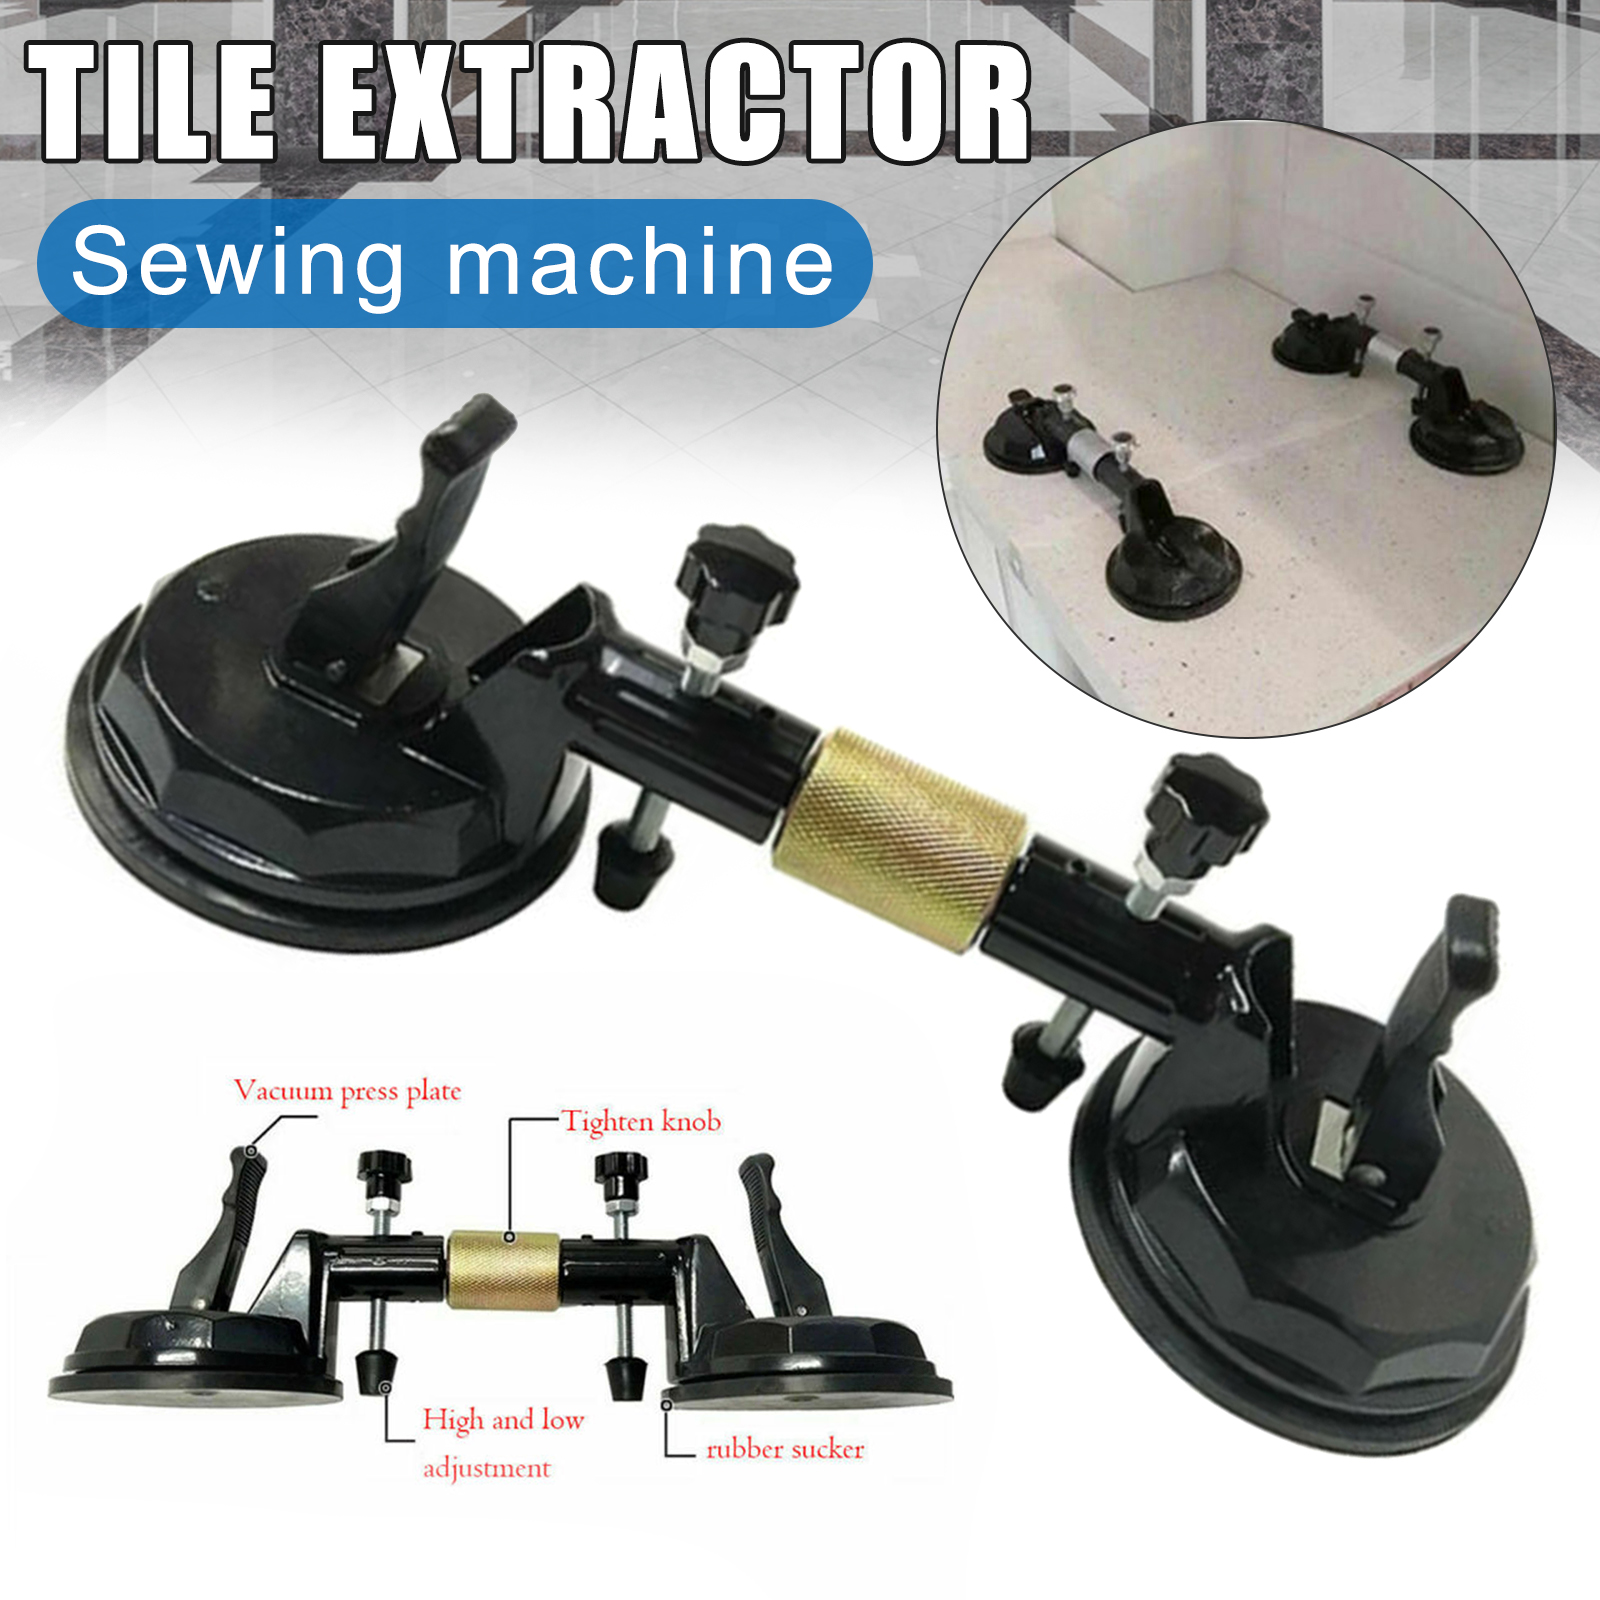 Adjustable Suction Cup Stone Seam Setter For Pulling And Aligning ...